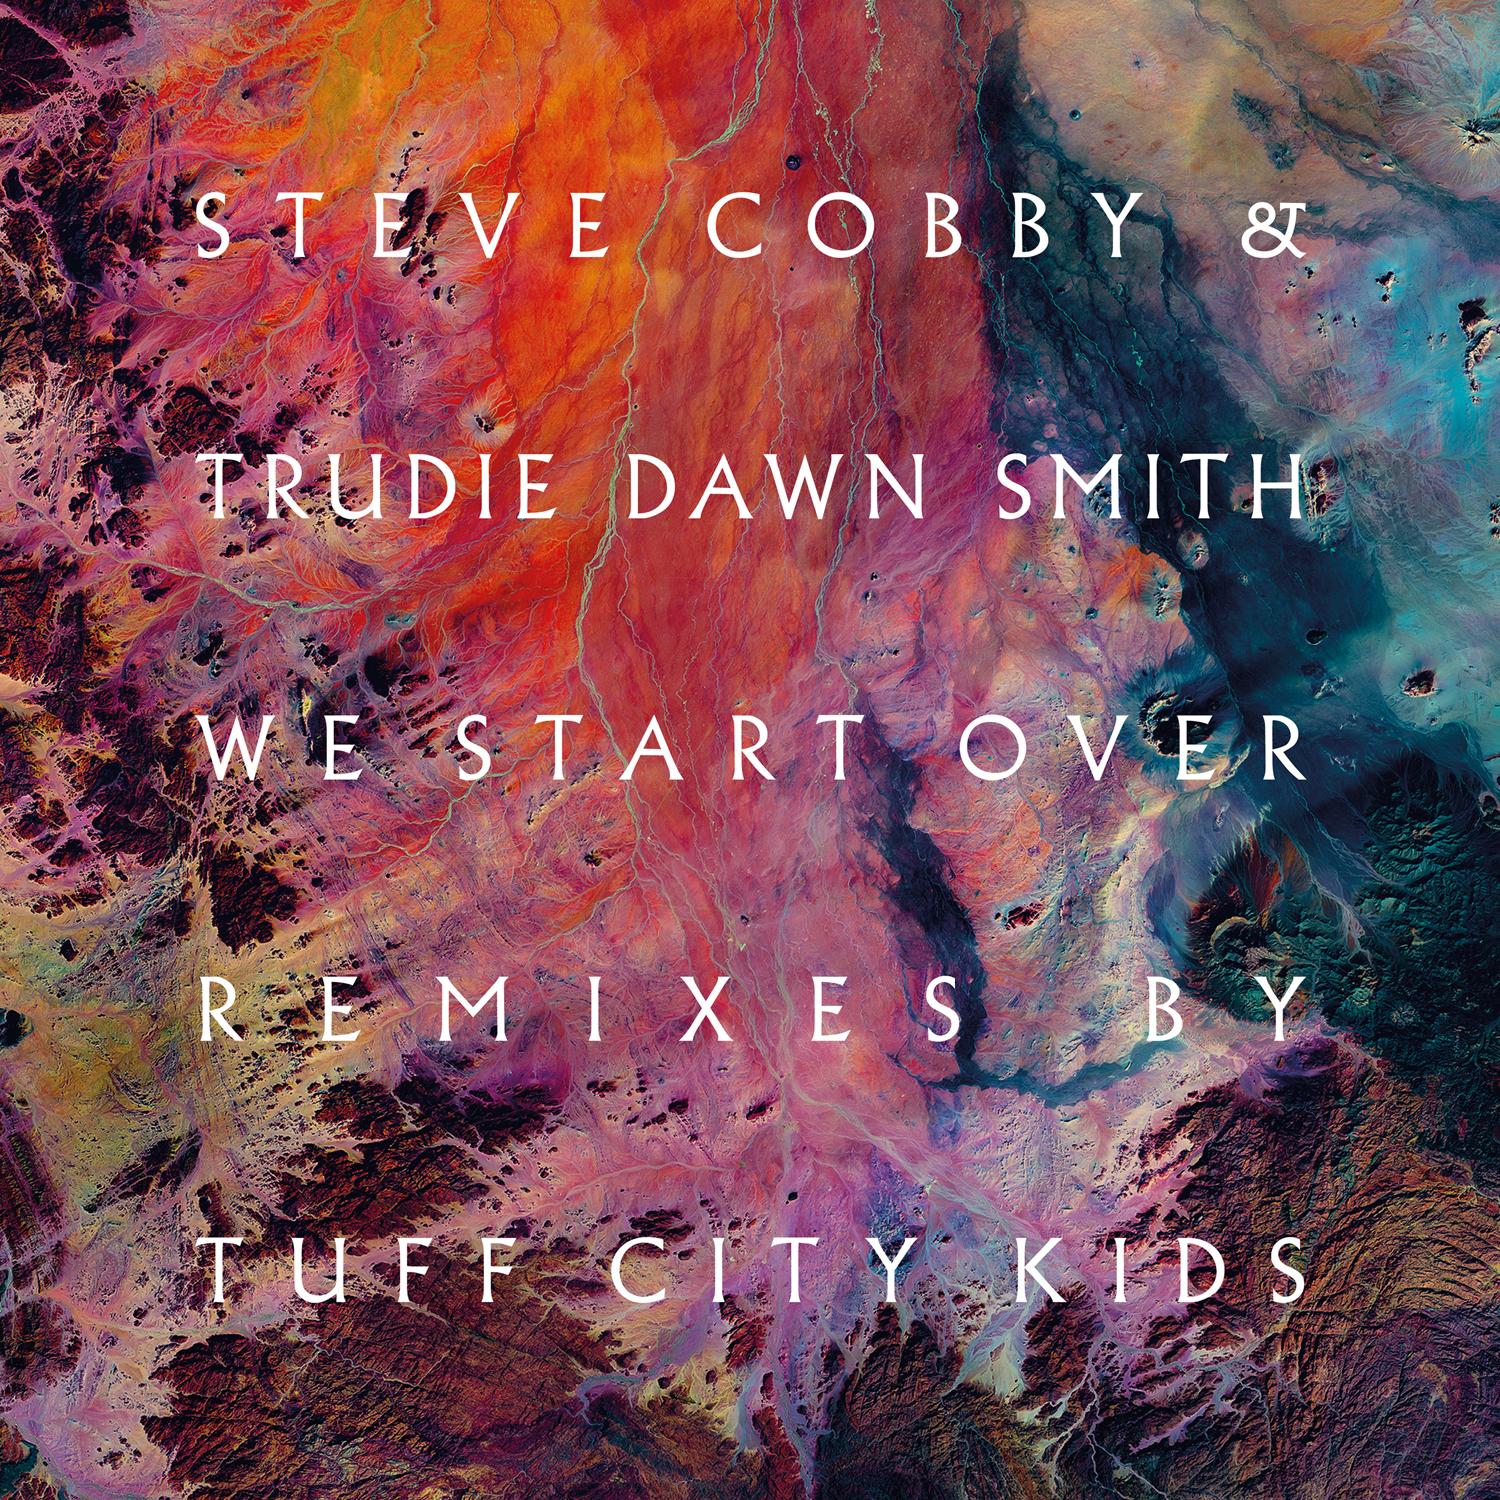 Steve Cobby, Trudie Dawn Smith, Over & Over, International Feel, Apiento & Lx, Remix, Test Pressing, Tuff City Kids,